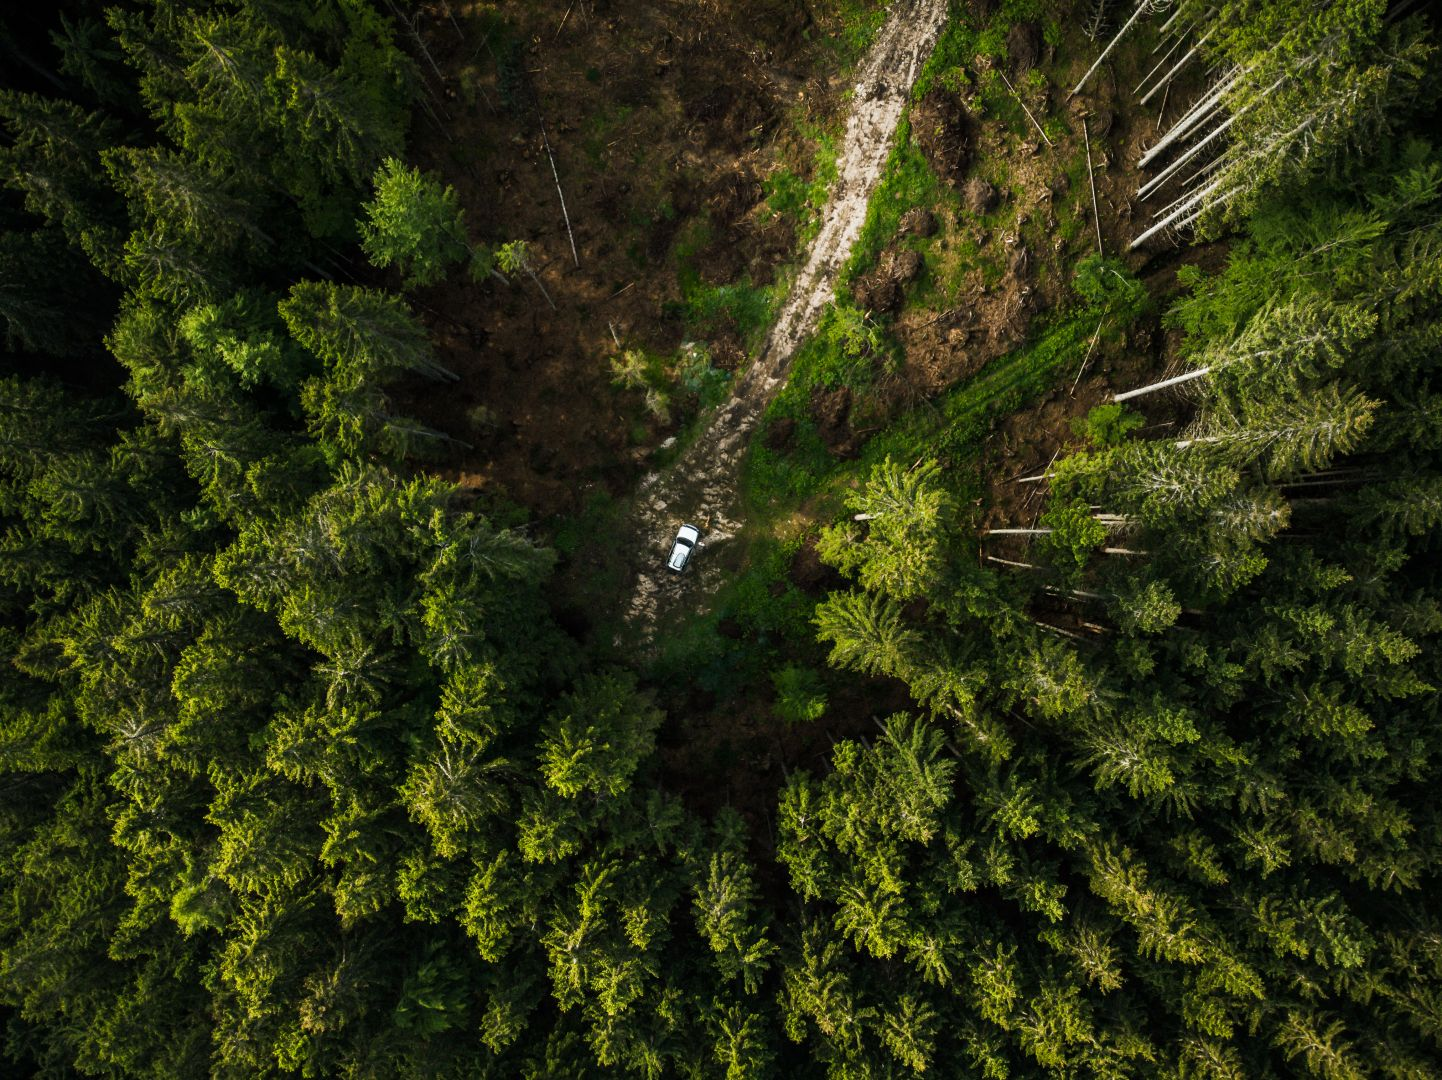 off-road-car-in-the-middle-of-forest-aerial-top-G48TF5X